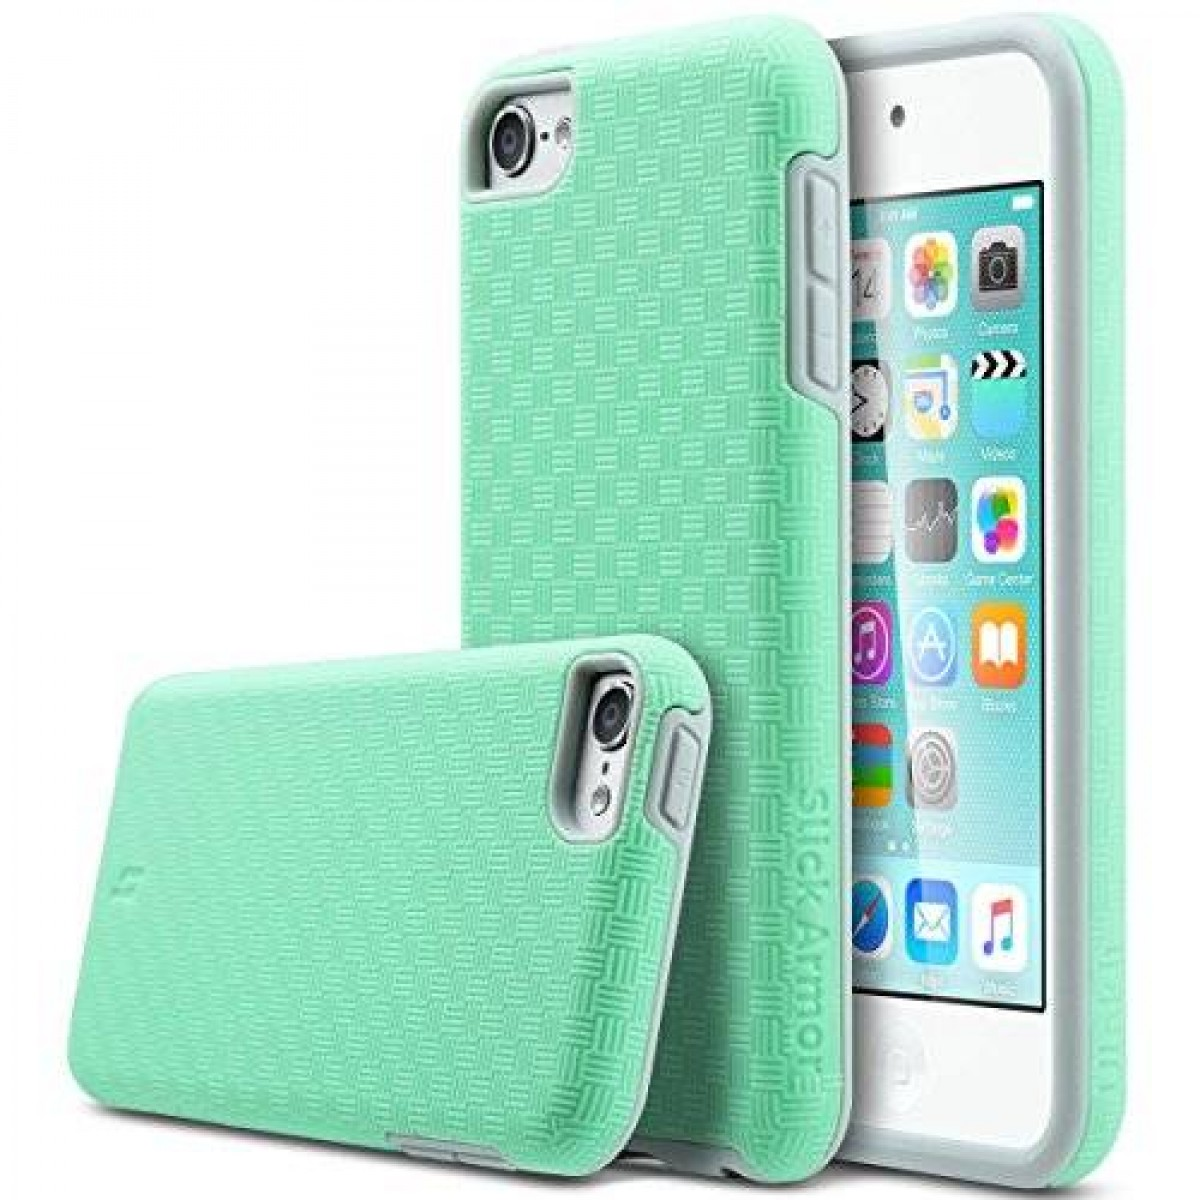 buy online 45b5b a9378 ULAK iPod 6 Case,iPod 5 Case,[ SLICK ARMOR ] Slim-Protection Case for Apple  iPod Touch 6 5th Generation (Green)